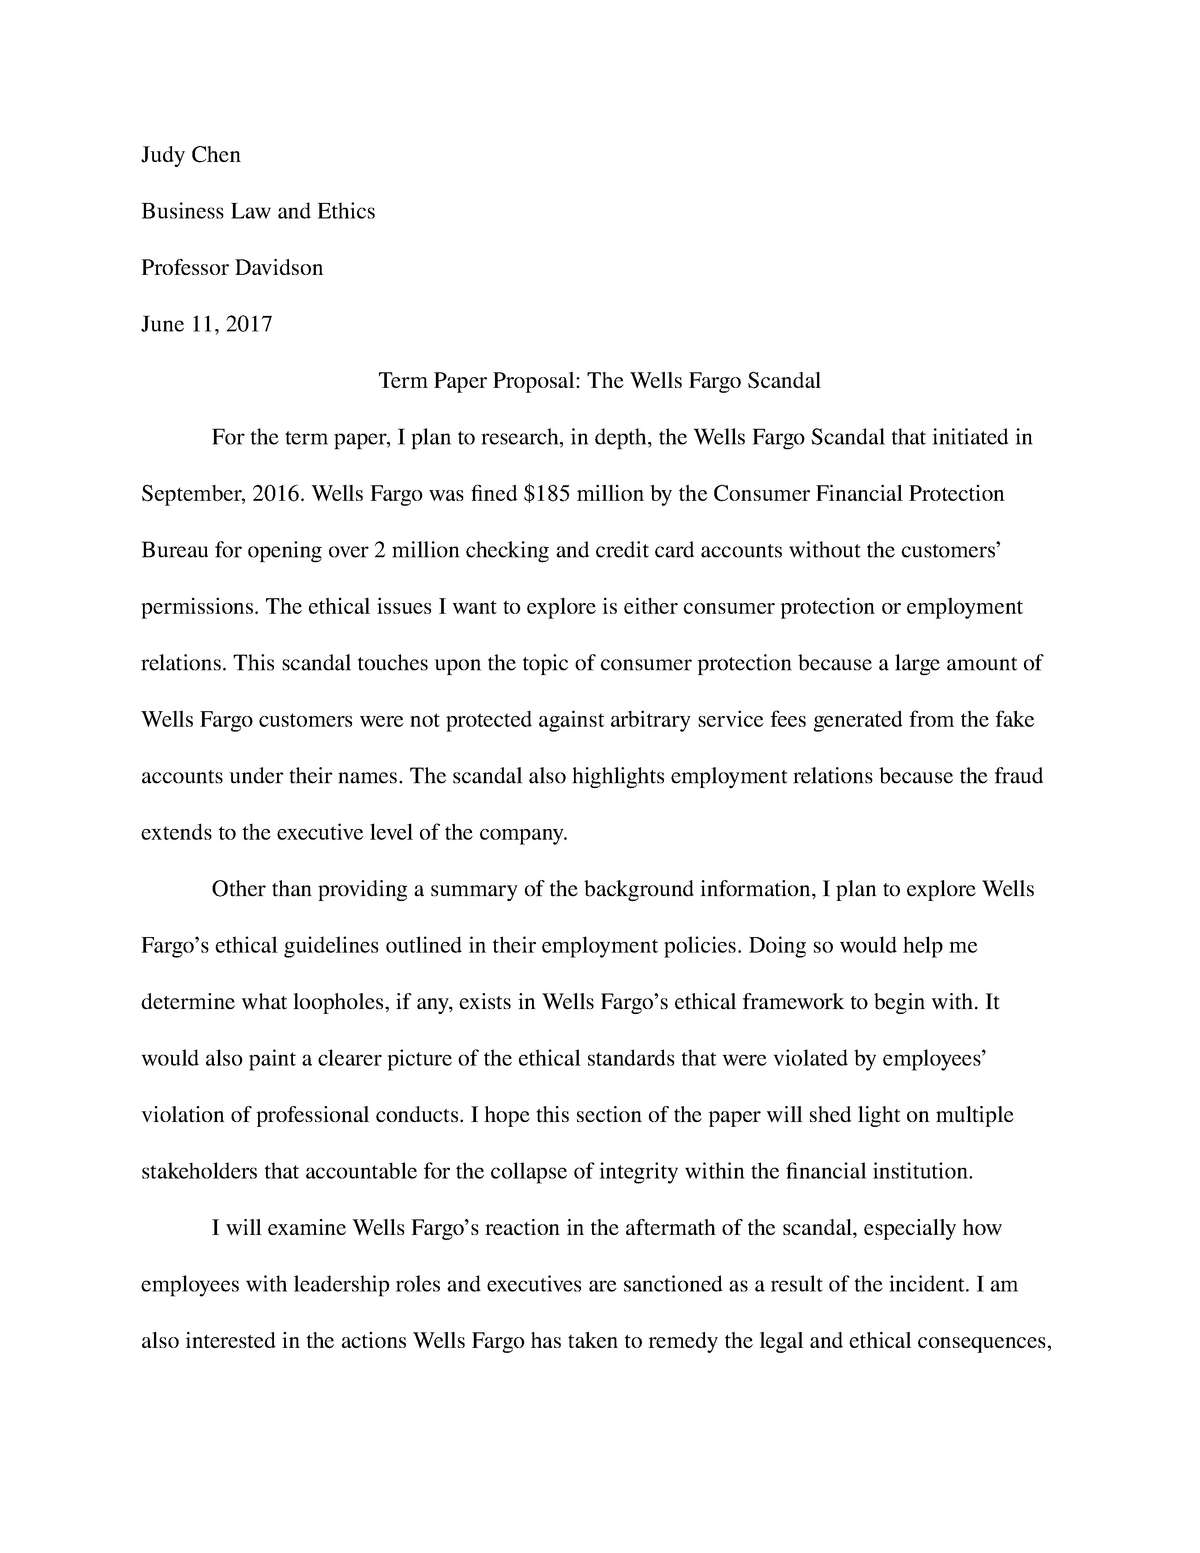 business law and ethics research paper